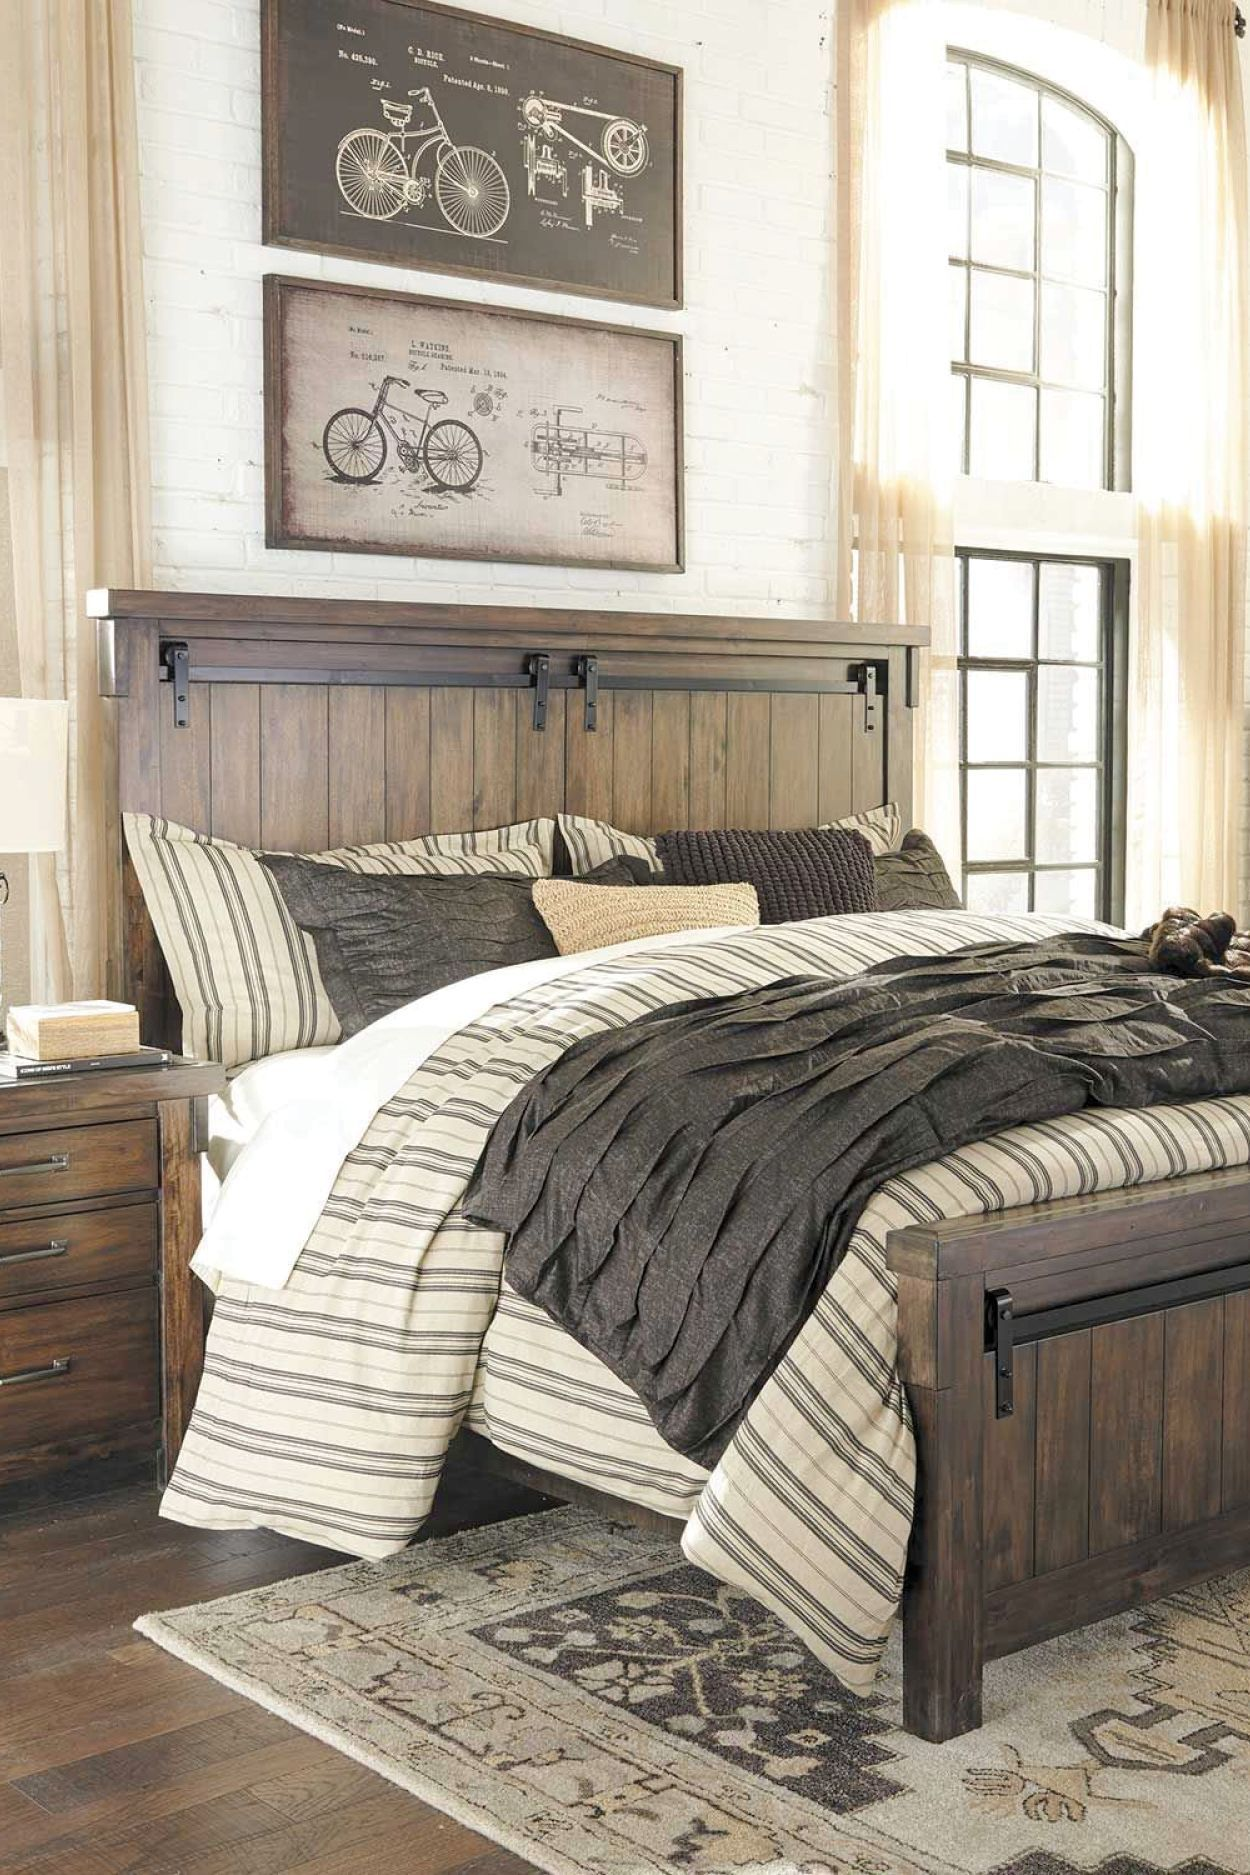 The Lakeleigh 5 Piece Bedroom Set By Ashley Furniture Combines